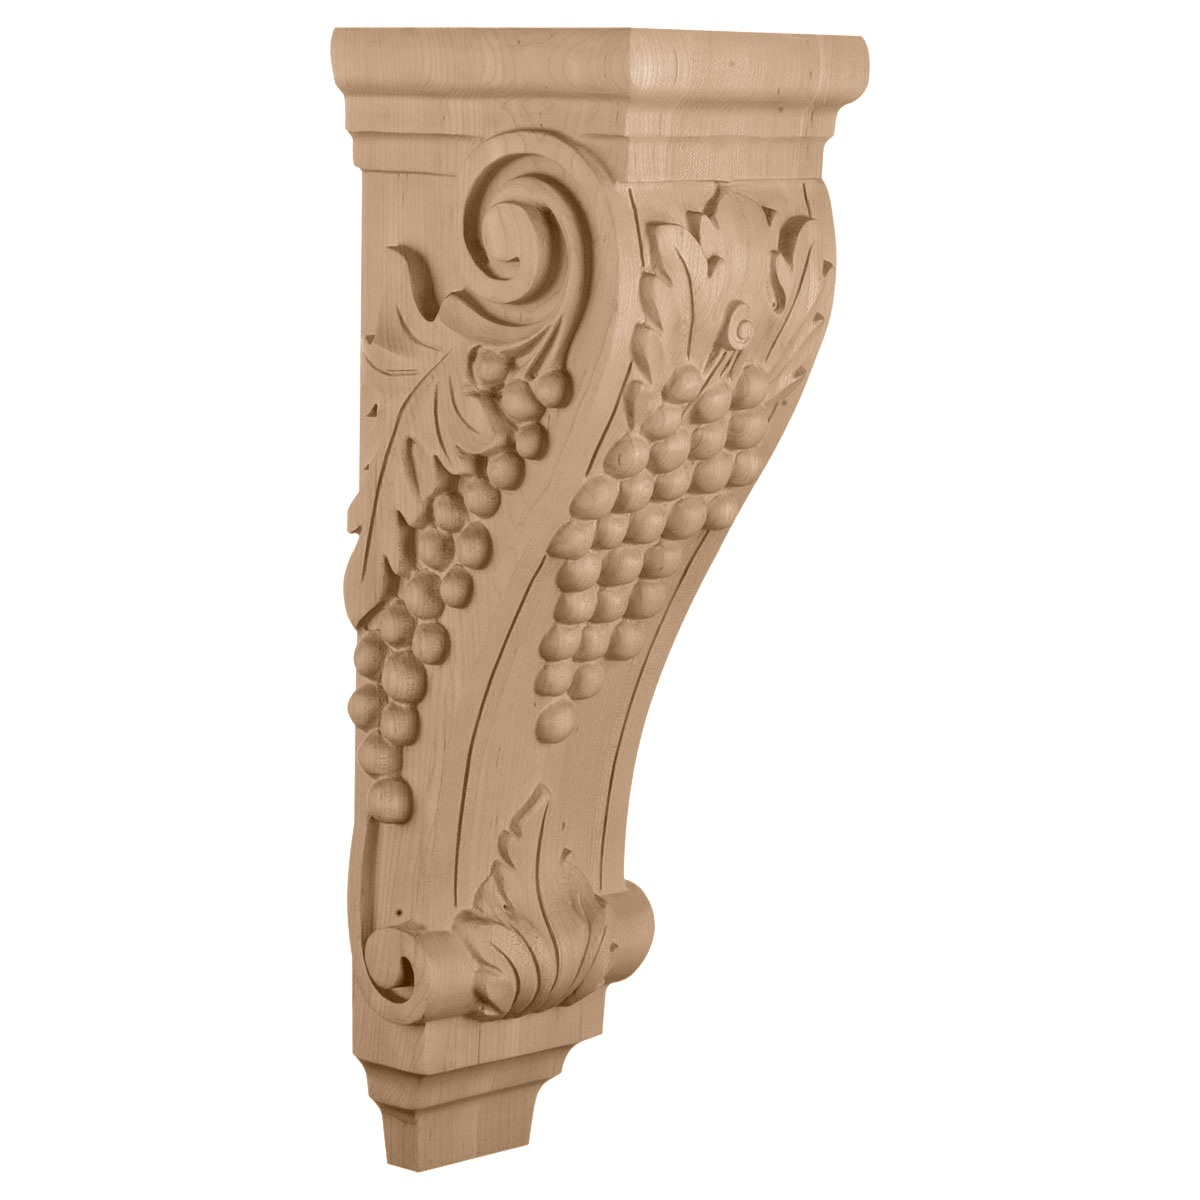 "CORGR8 Extra Large Grape Corbel 6 1/2""W x 7 5/8""D x 22""H"